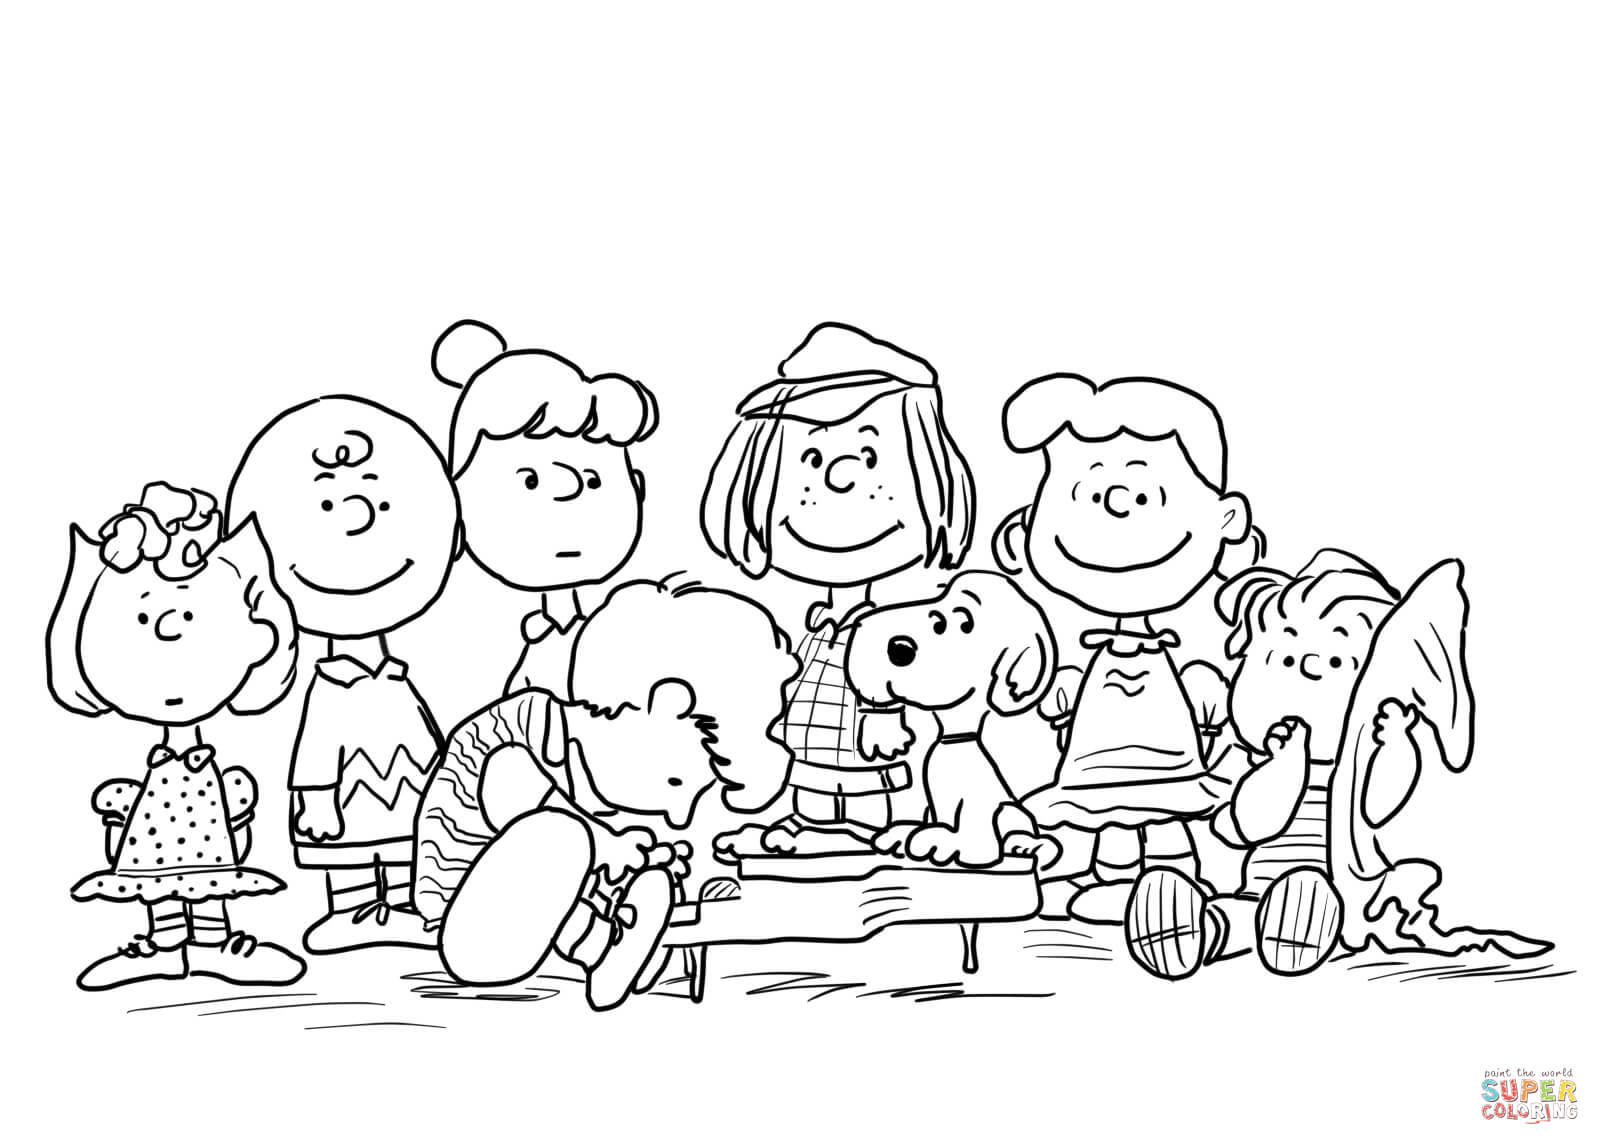 Peanuts Characters Coloring Page Free Printable Coloring